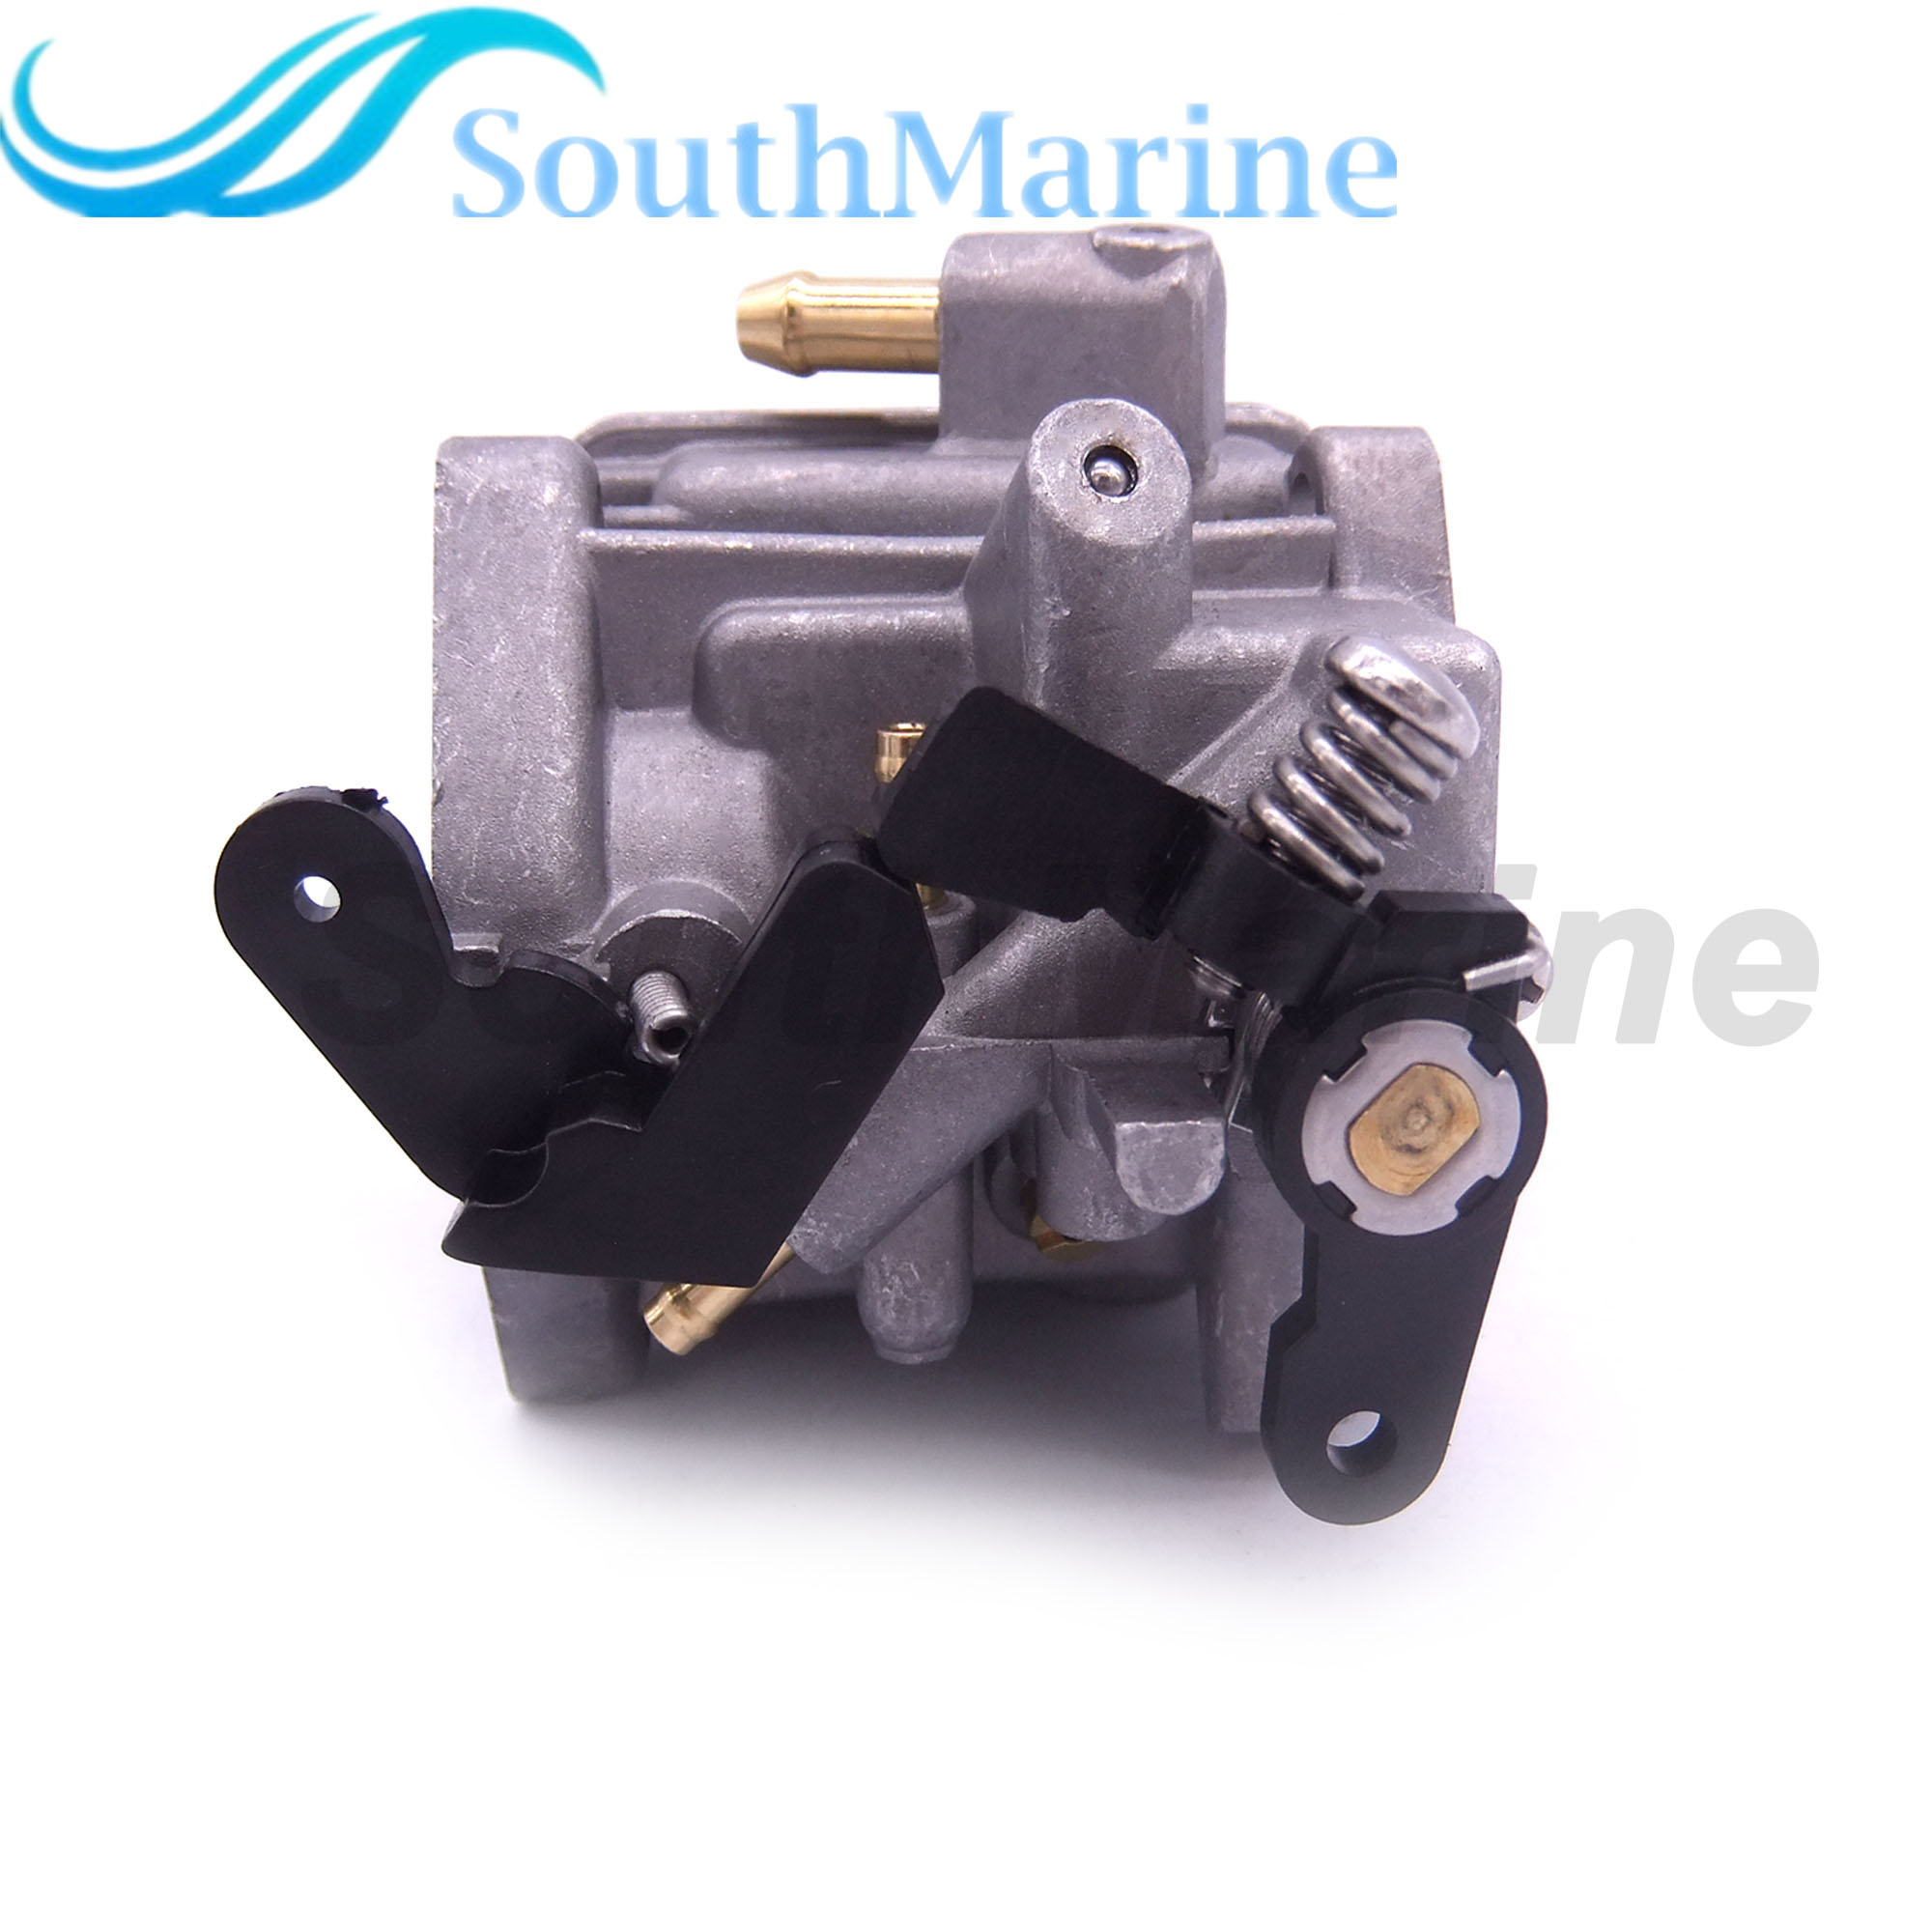 16100-ZV1-A00 16100-ZV1-A01 16100-ZV1-A02 16100-ZV1-A03 Carburetor Carb Assy For Honda Outboard Engine BC05B BF5 5HP